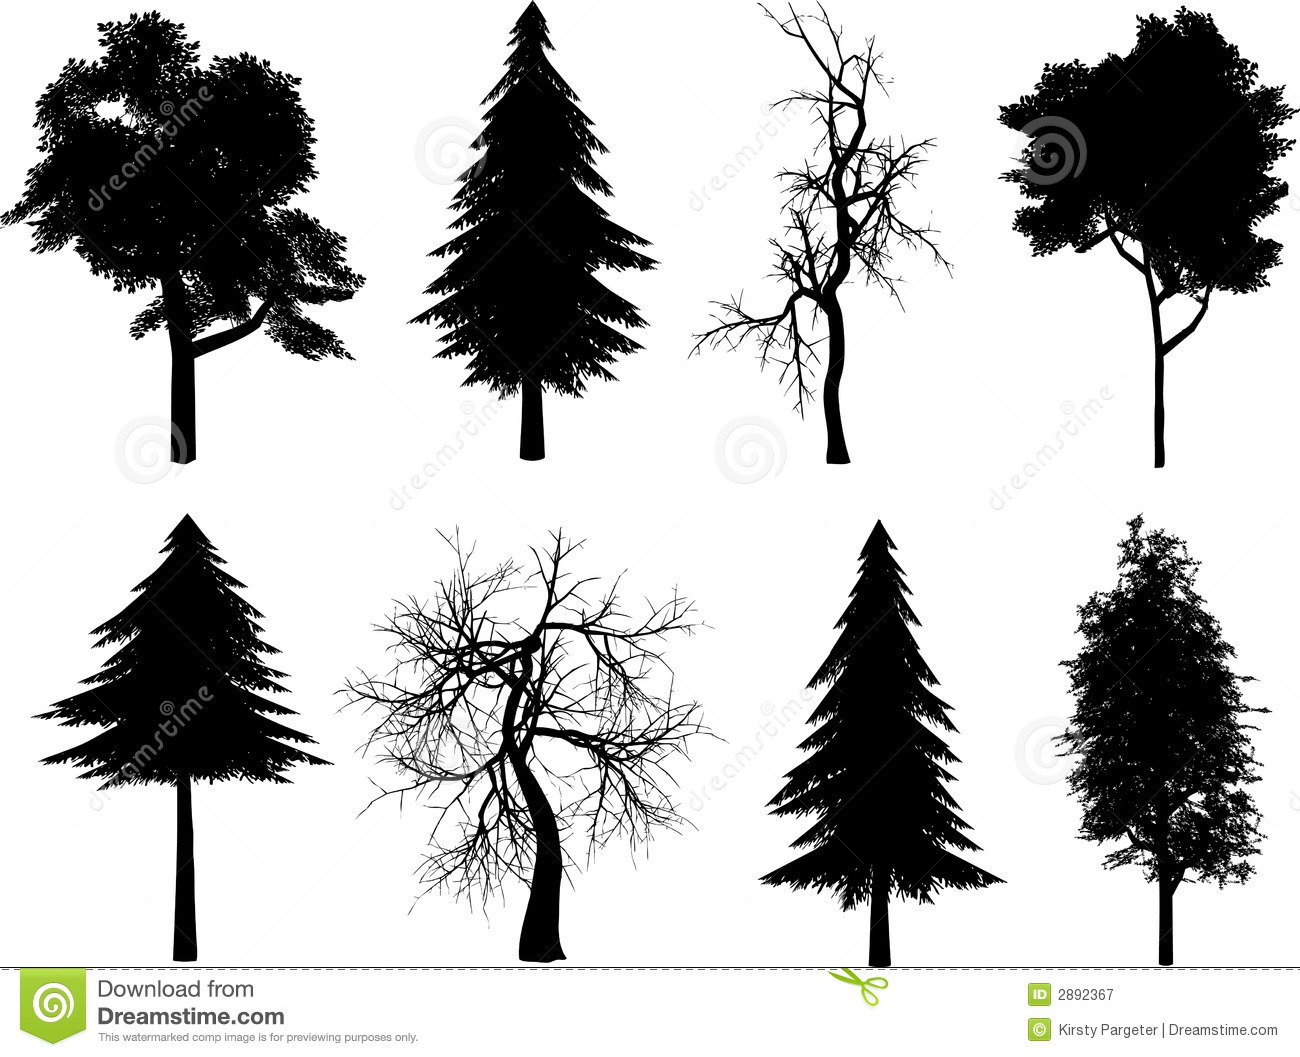 Tree Silhouettes Royalty Free Stock Photography - Image: 2892367